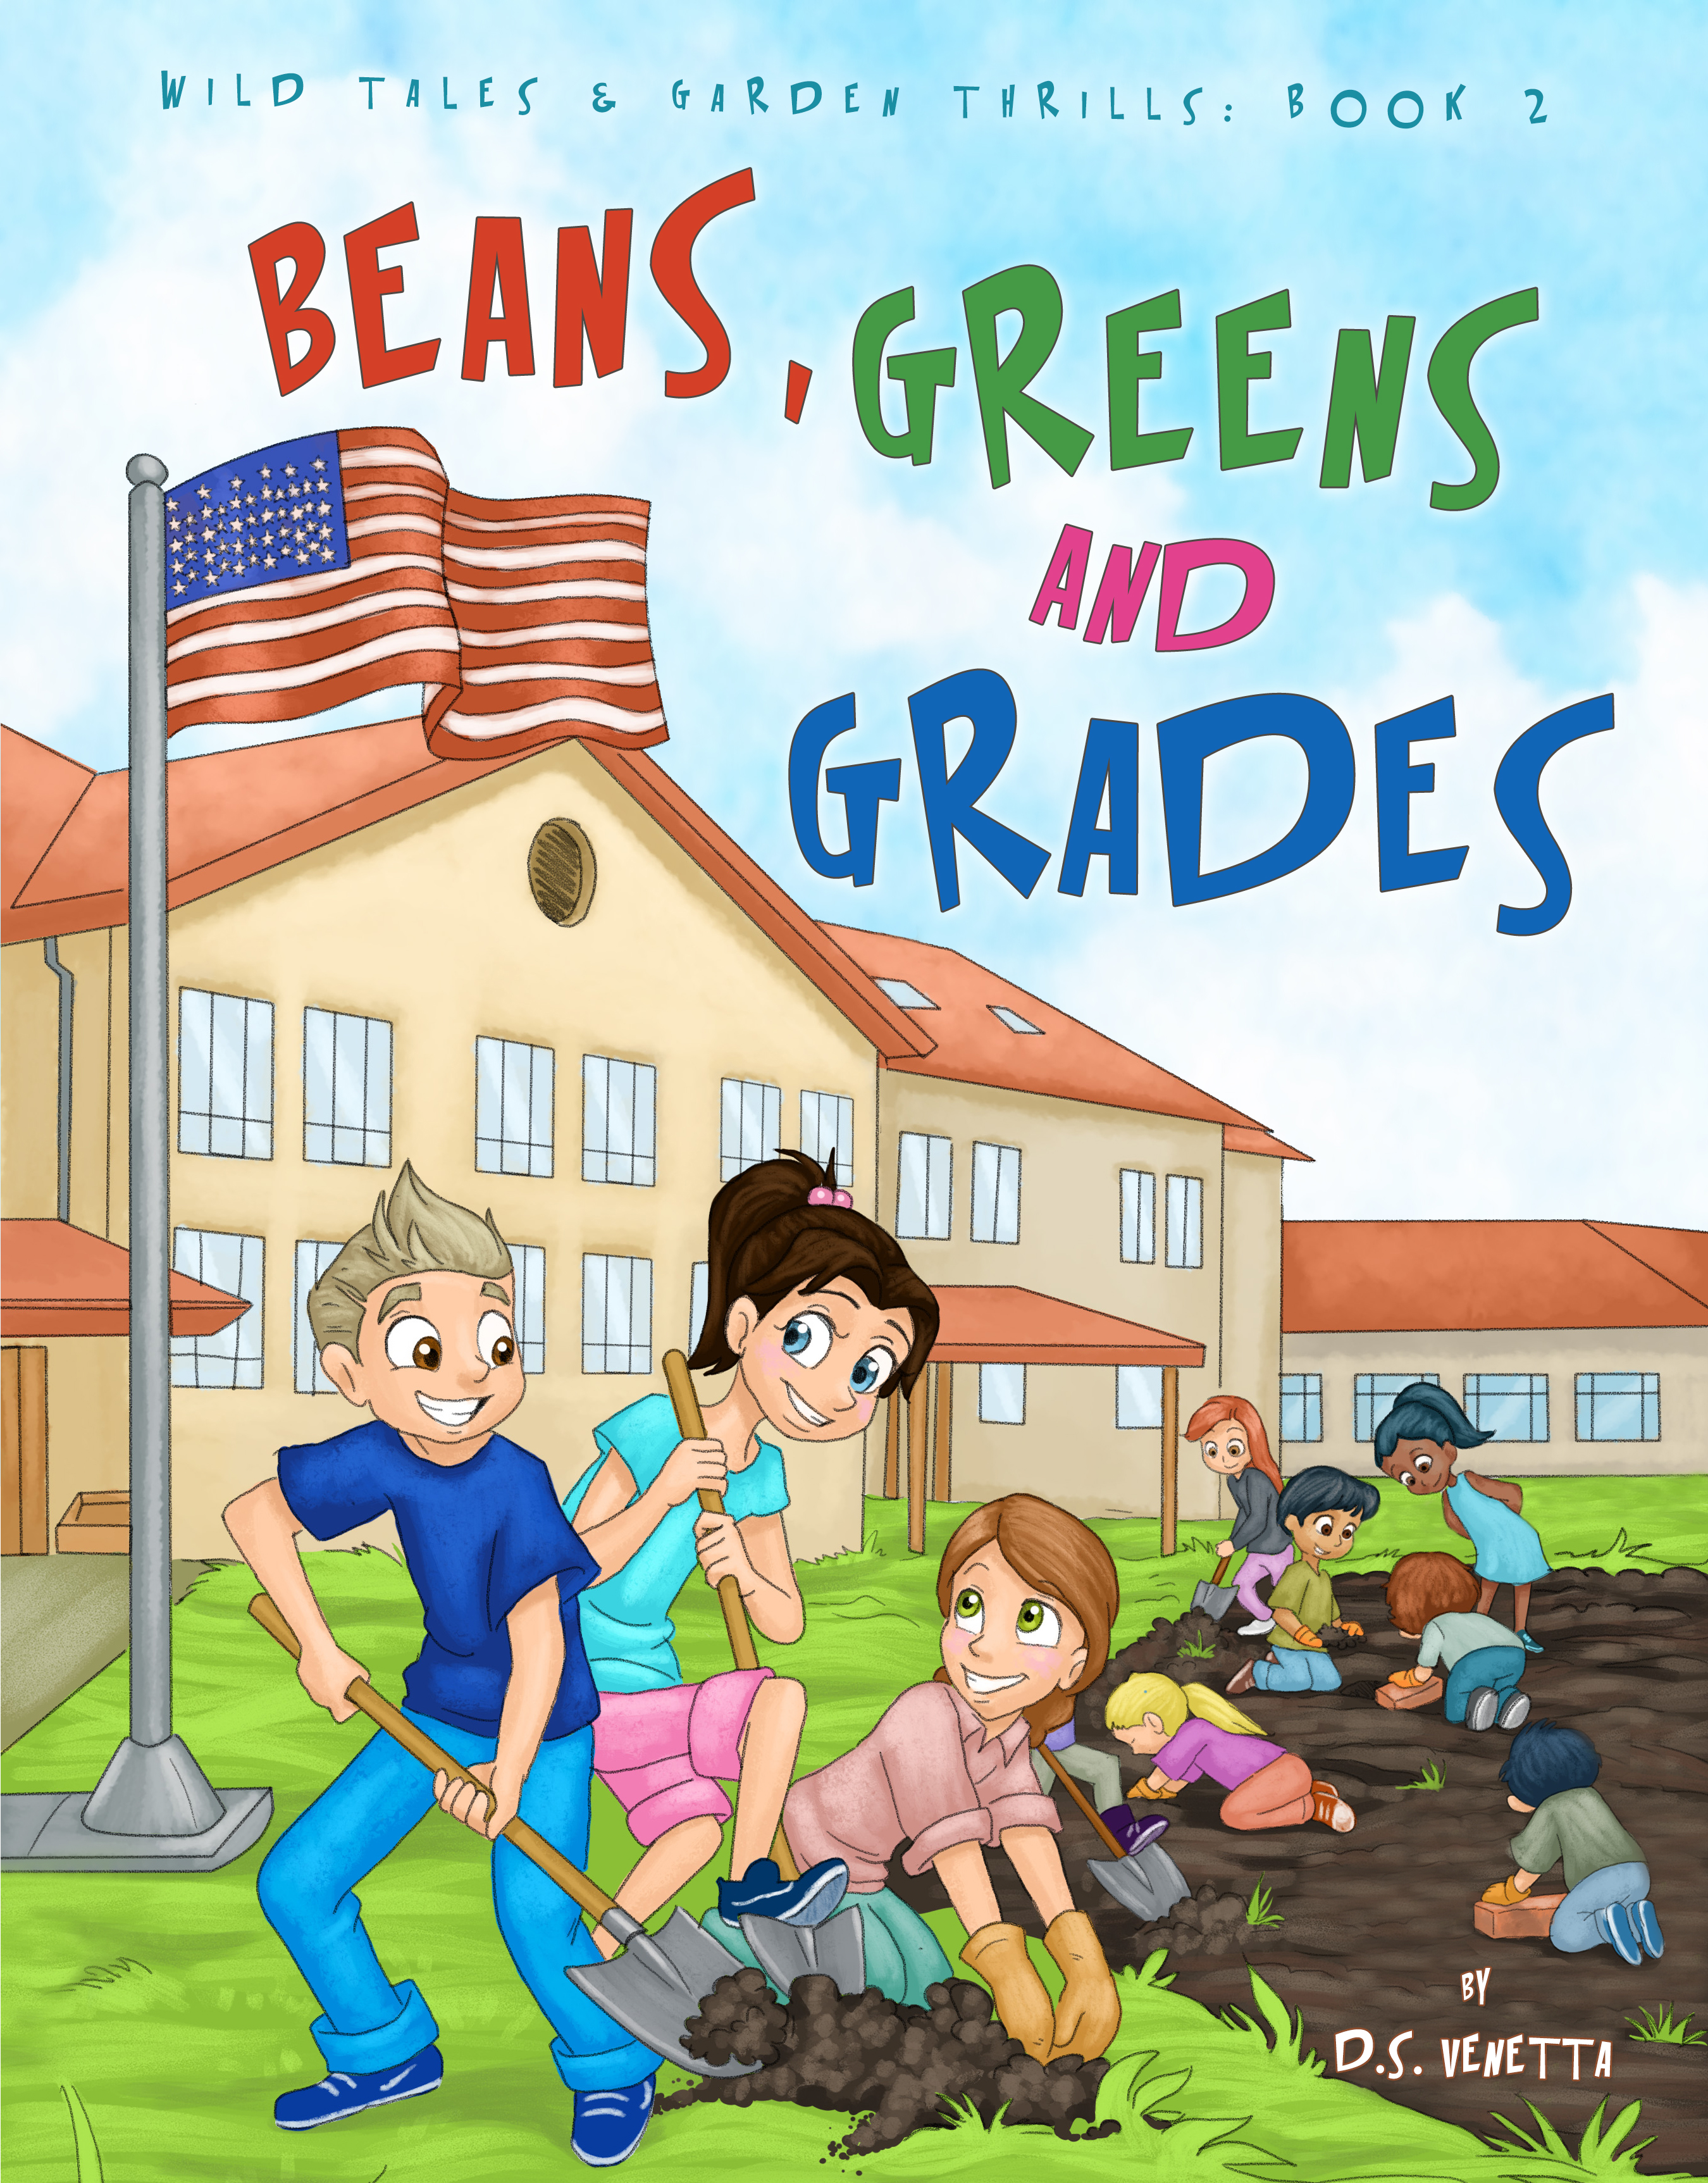 beans greens and grades by d.s. venetta